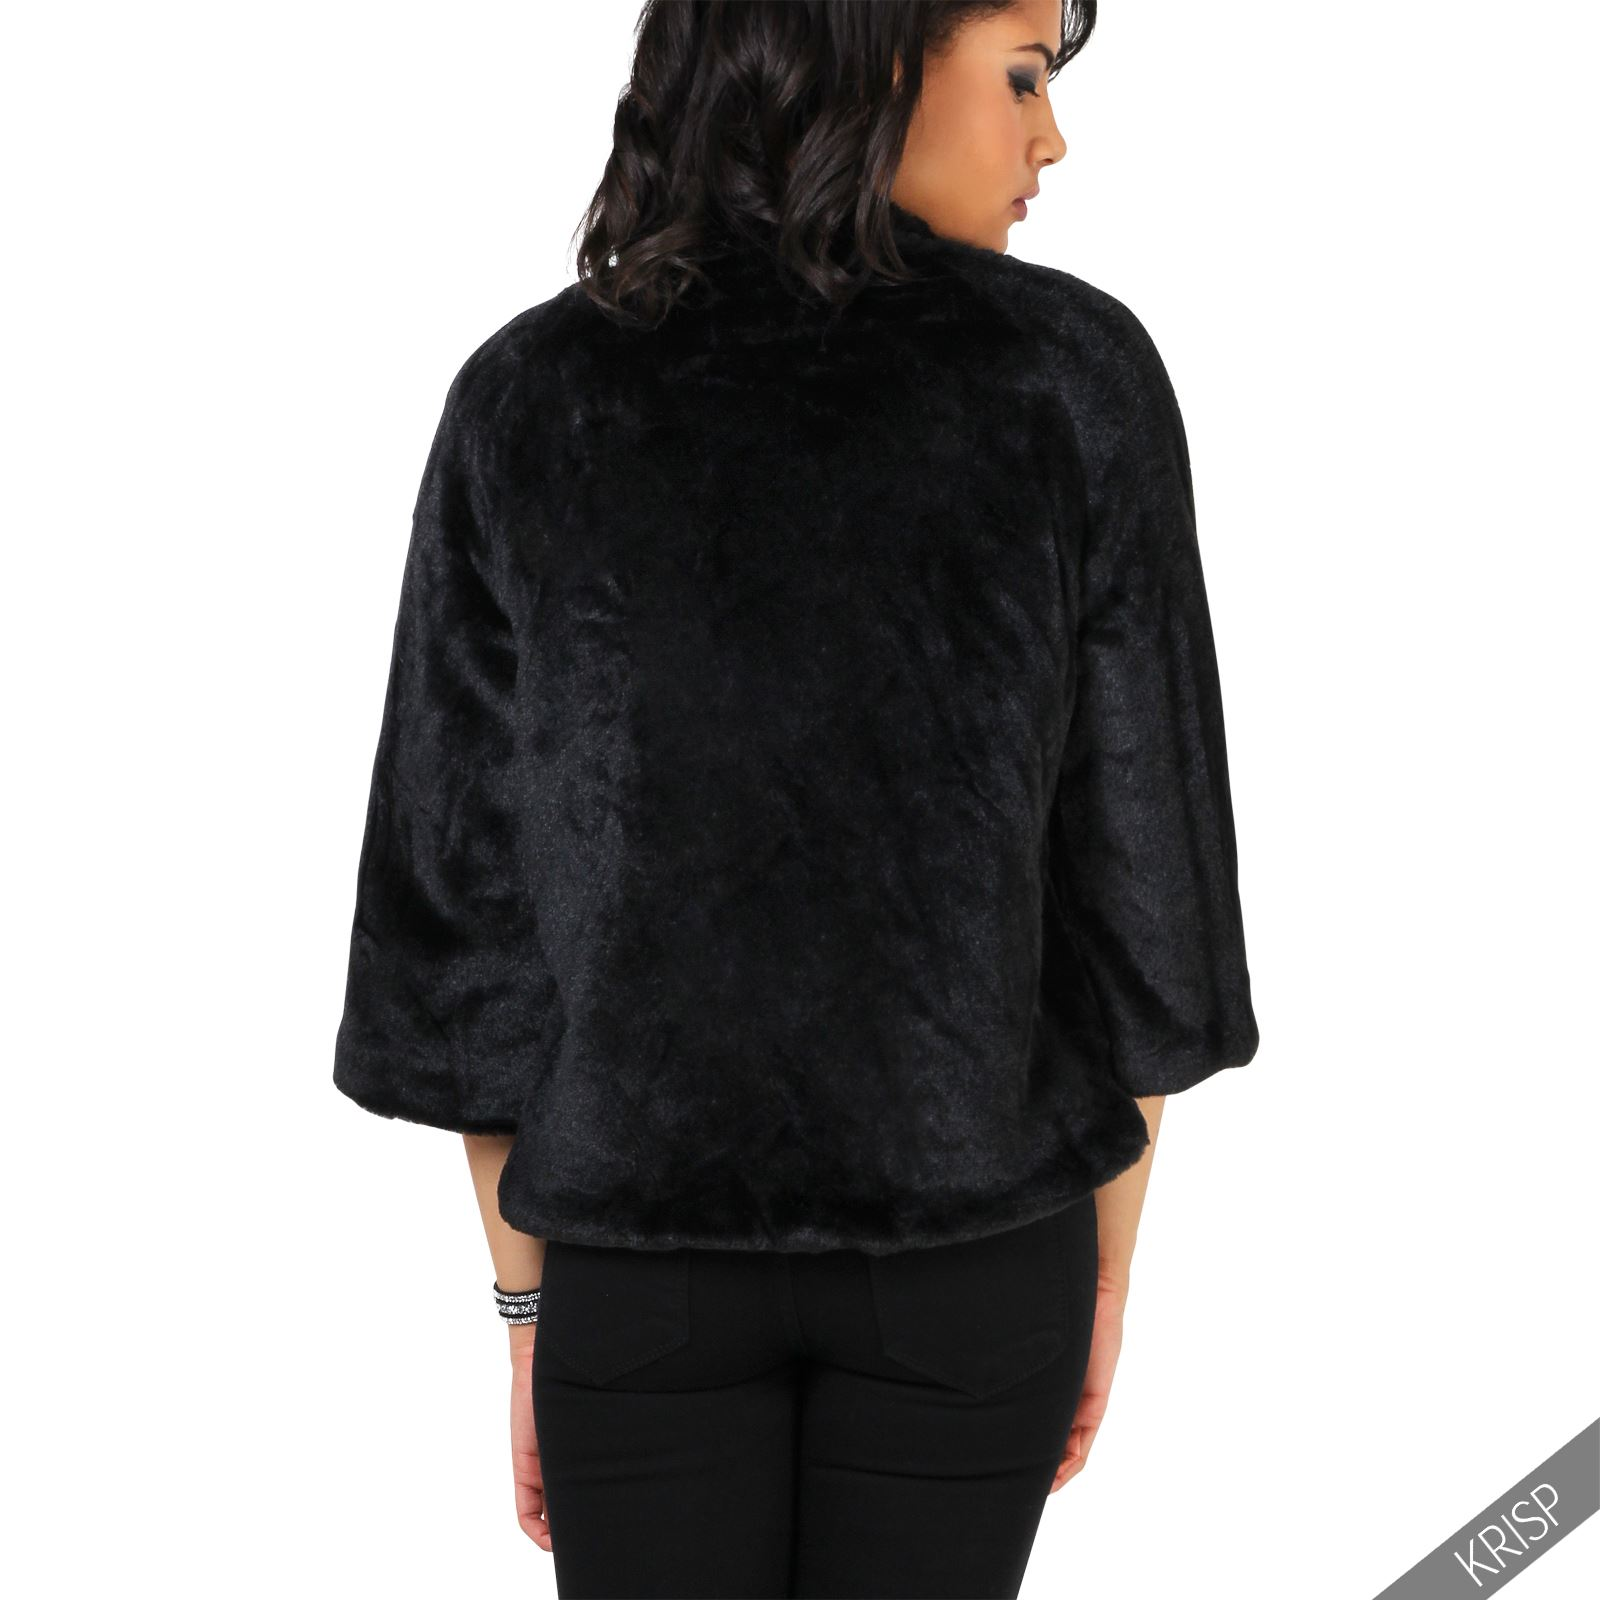 Alfani $ ALFANI New Womens Gray Bolero Jacket M B+B. Sold by BOBBI + BRICKA. $ $ Bonnie Jean Big Girls Pink Swirl Faux Fur Long Sleeve Bolero Jacket Sold by Sophias Style Boutique Inc. $ $ Bonnie Jean Little Girls Black Swirl Faux Fur Long Sleeve Bolero Jacket .